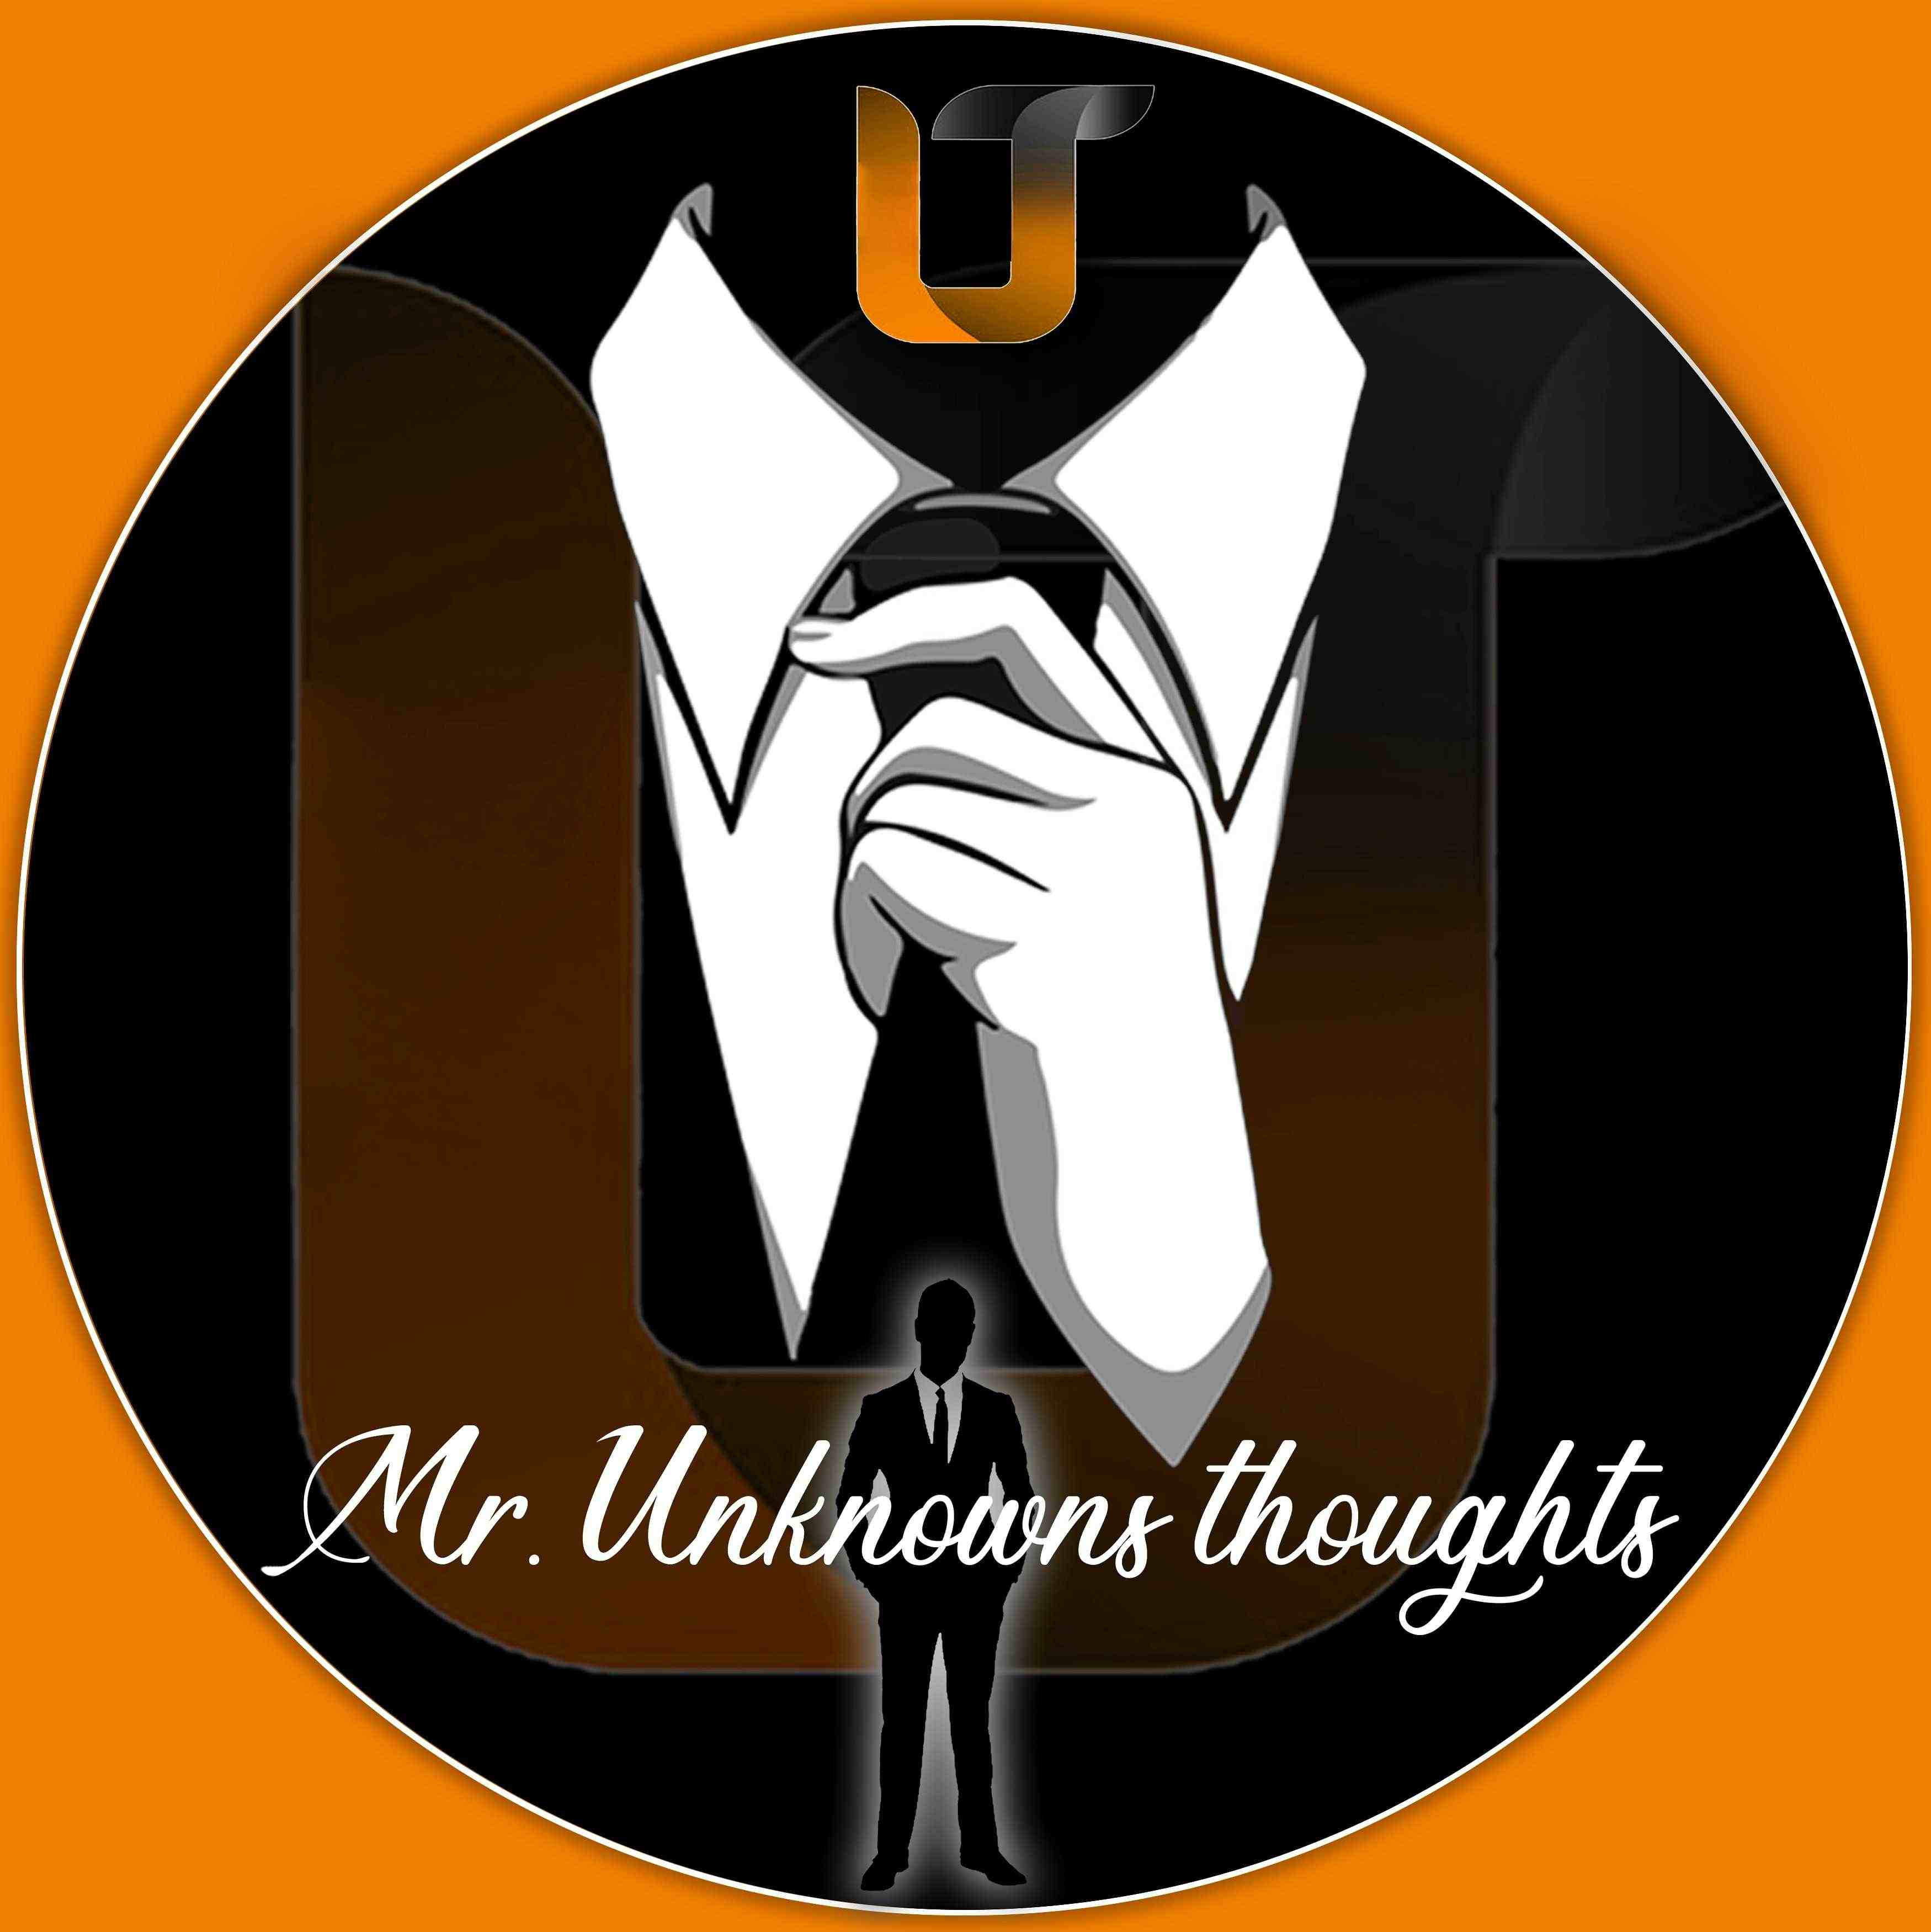 Mr.Unknown's thoughts